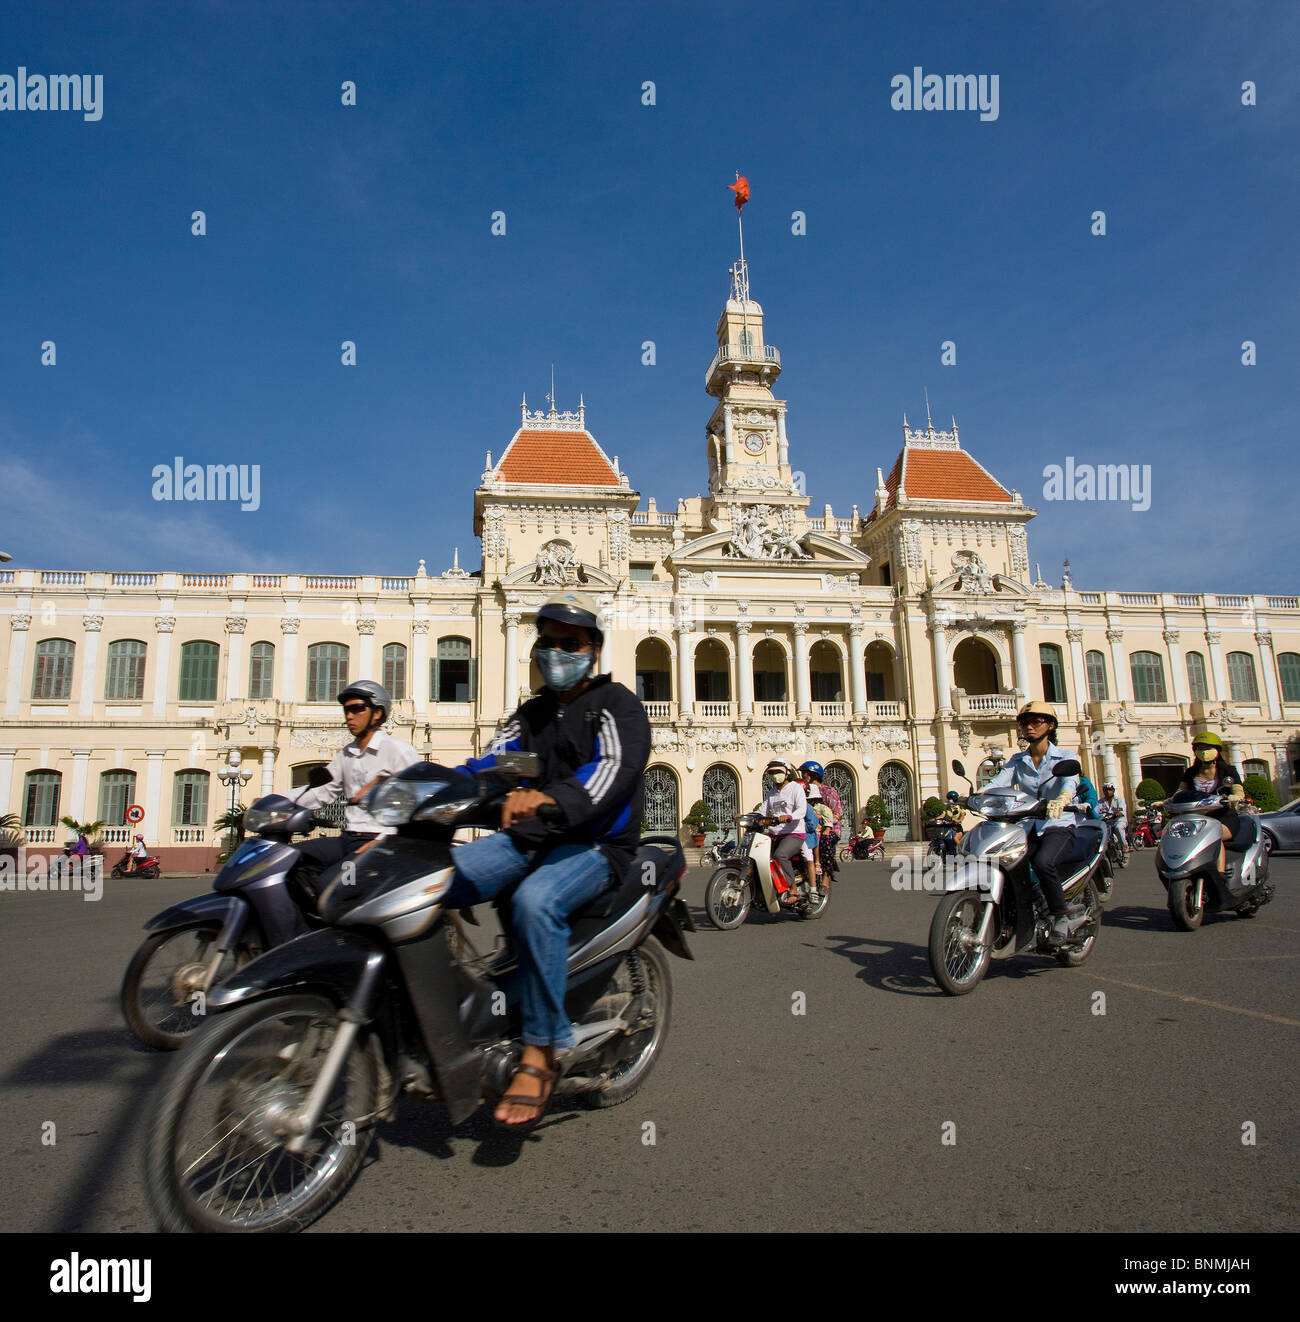 Saigon Ho Chi Minh town city Vietnam place space city hall motorcycles motorbikes traffic Asia traveling place of - Stock Image